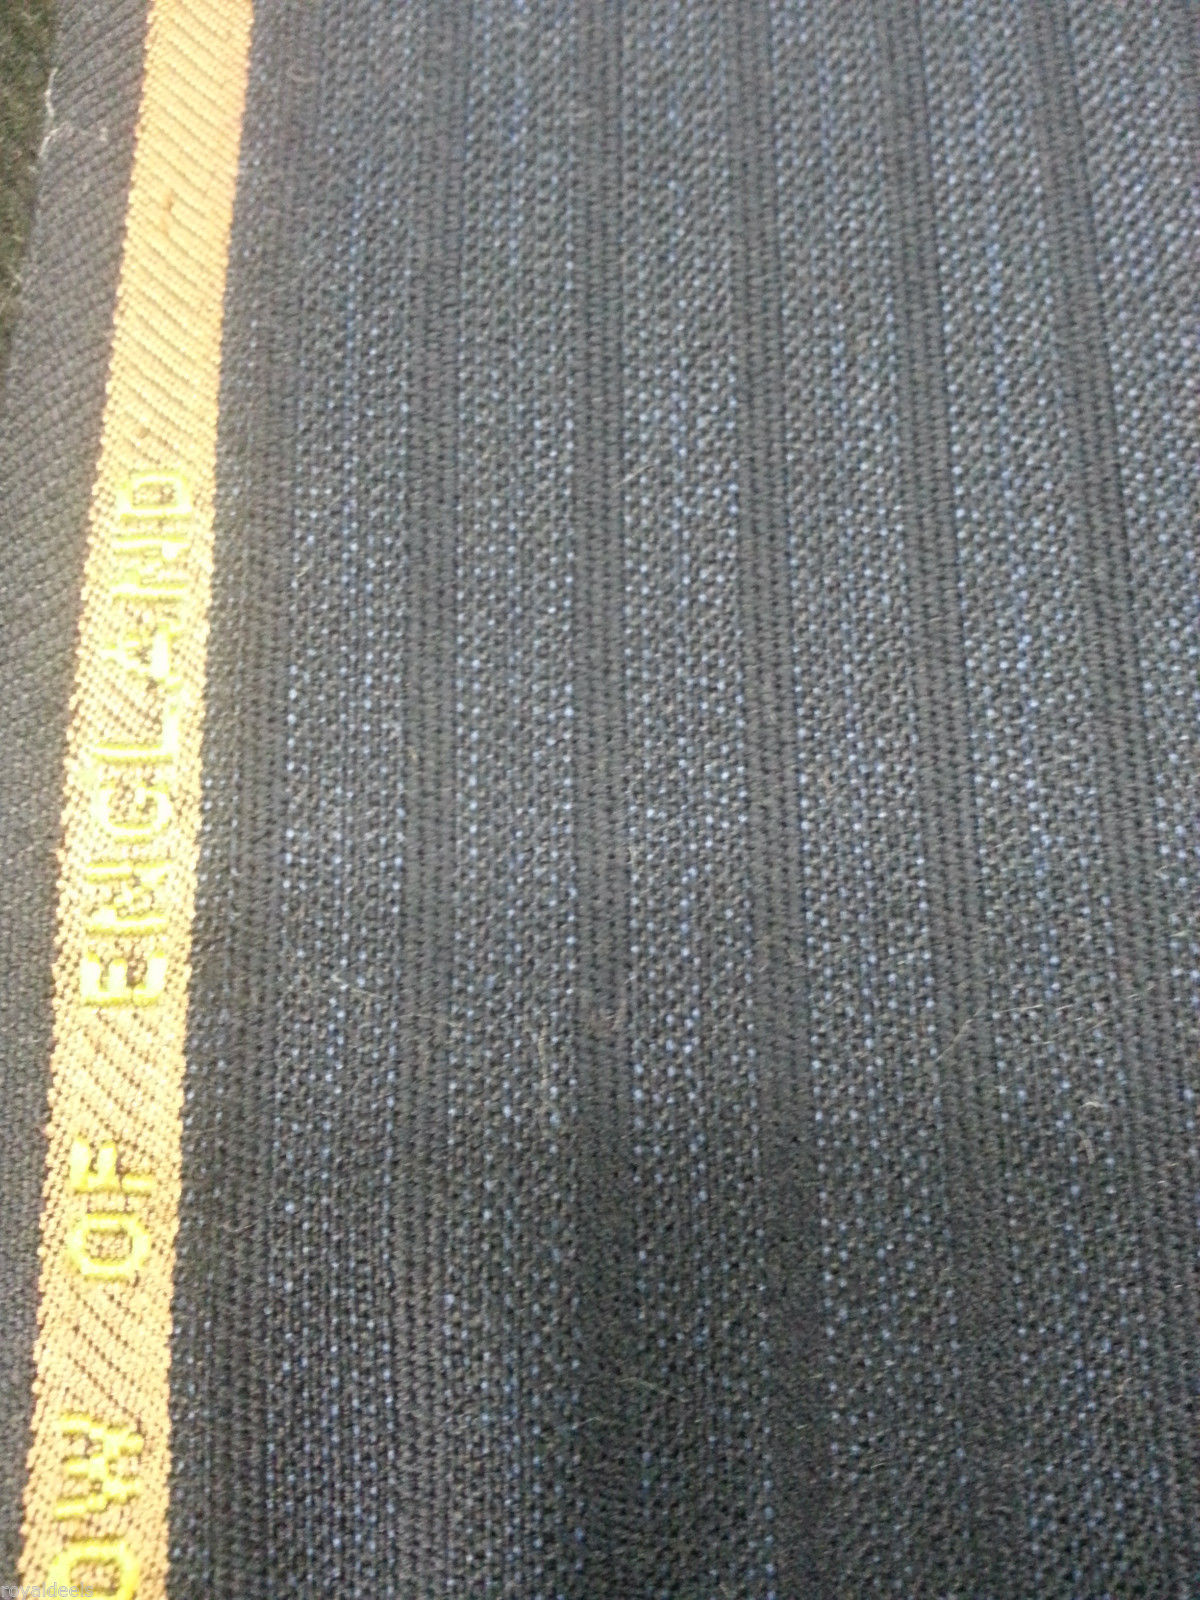 Wool Suit / Skirt  Fabric Striped 100'S ENGLISH FINE WOOL  7 Yard- MSRP $675